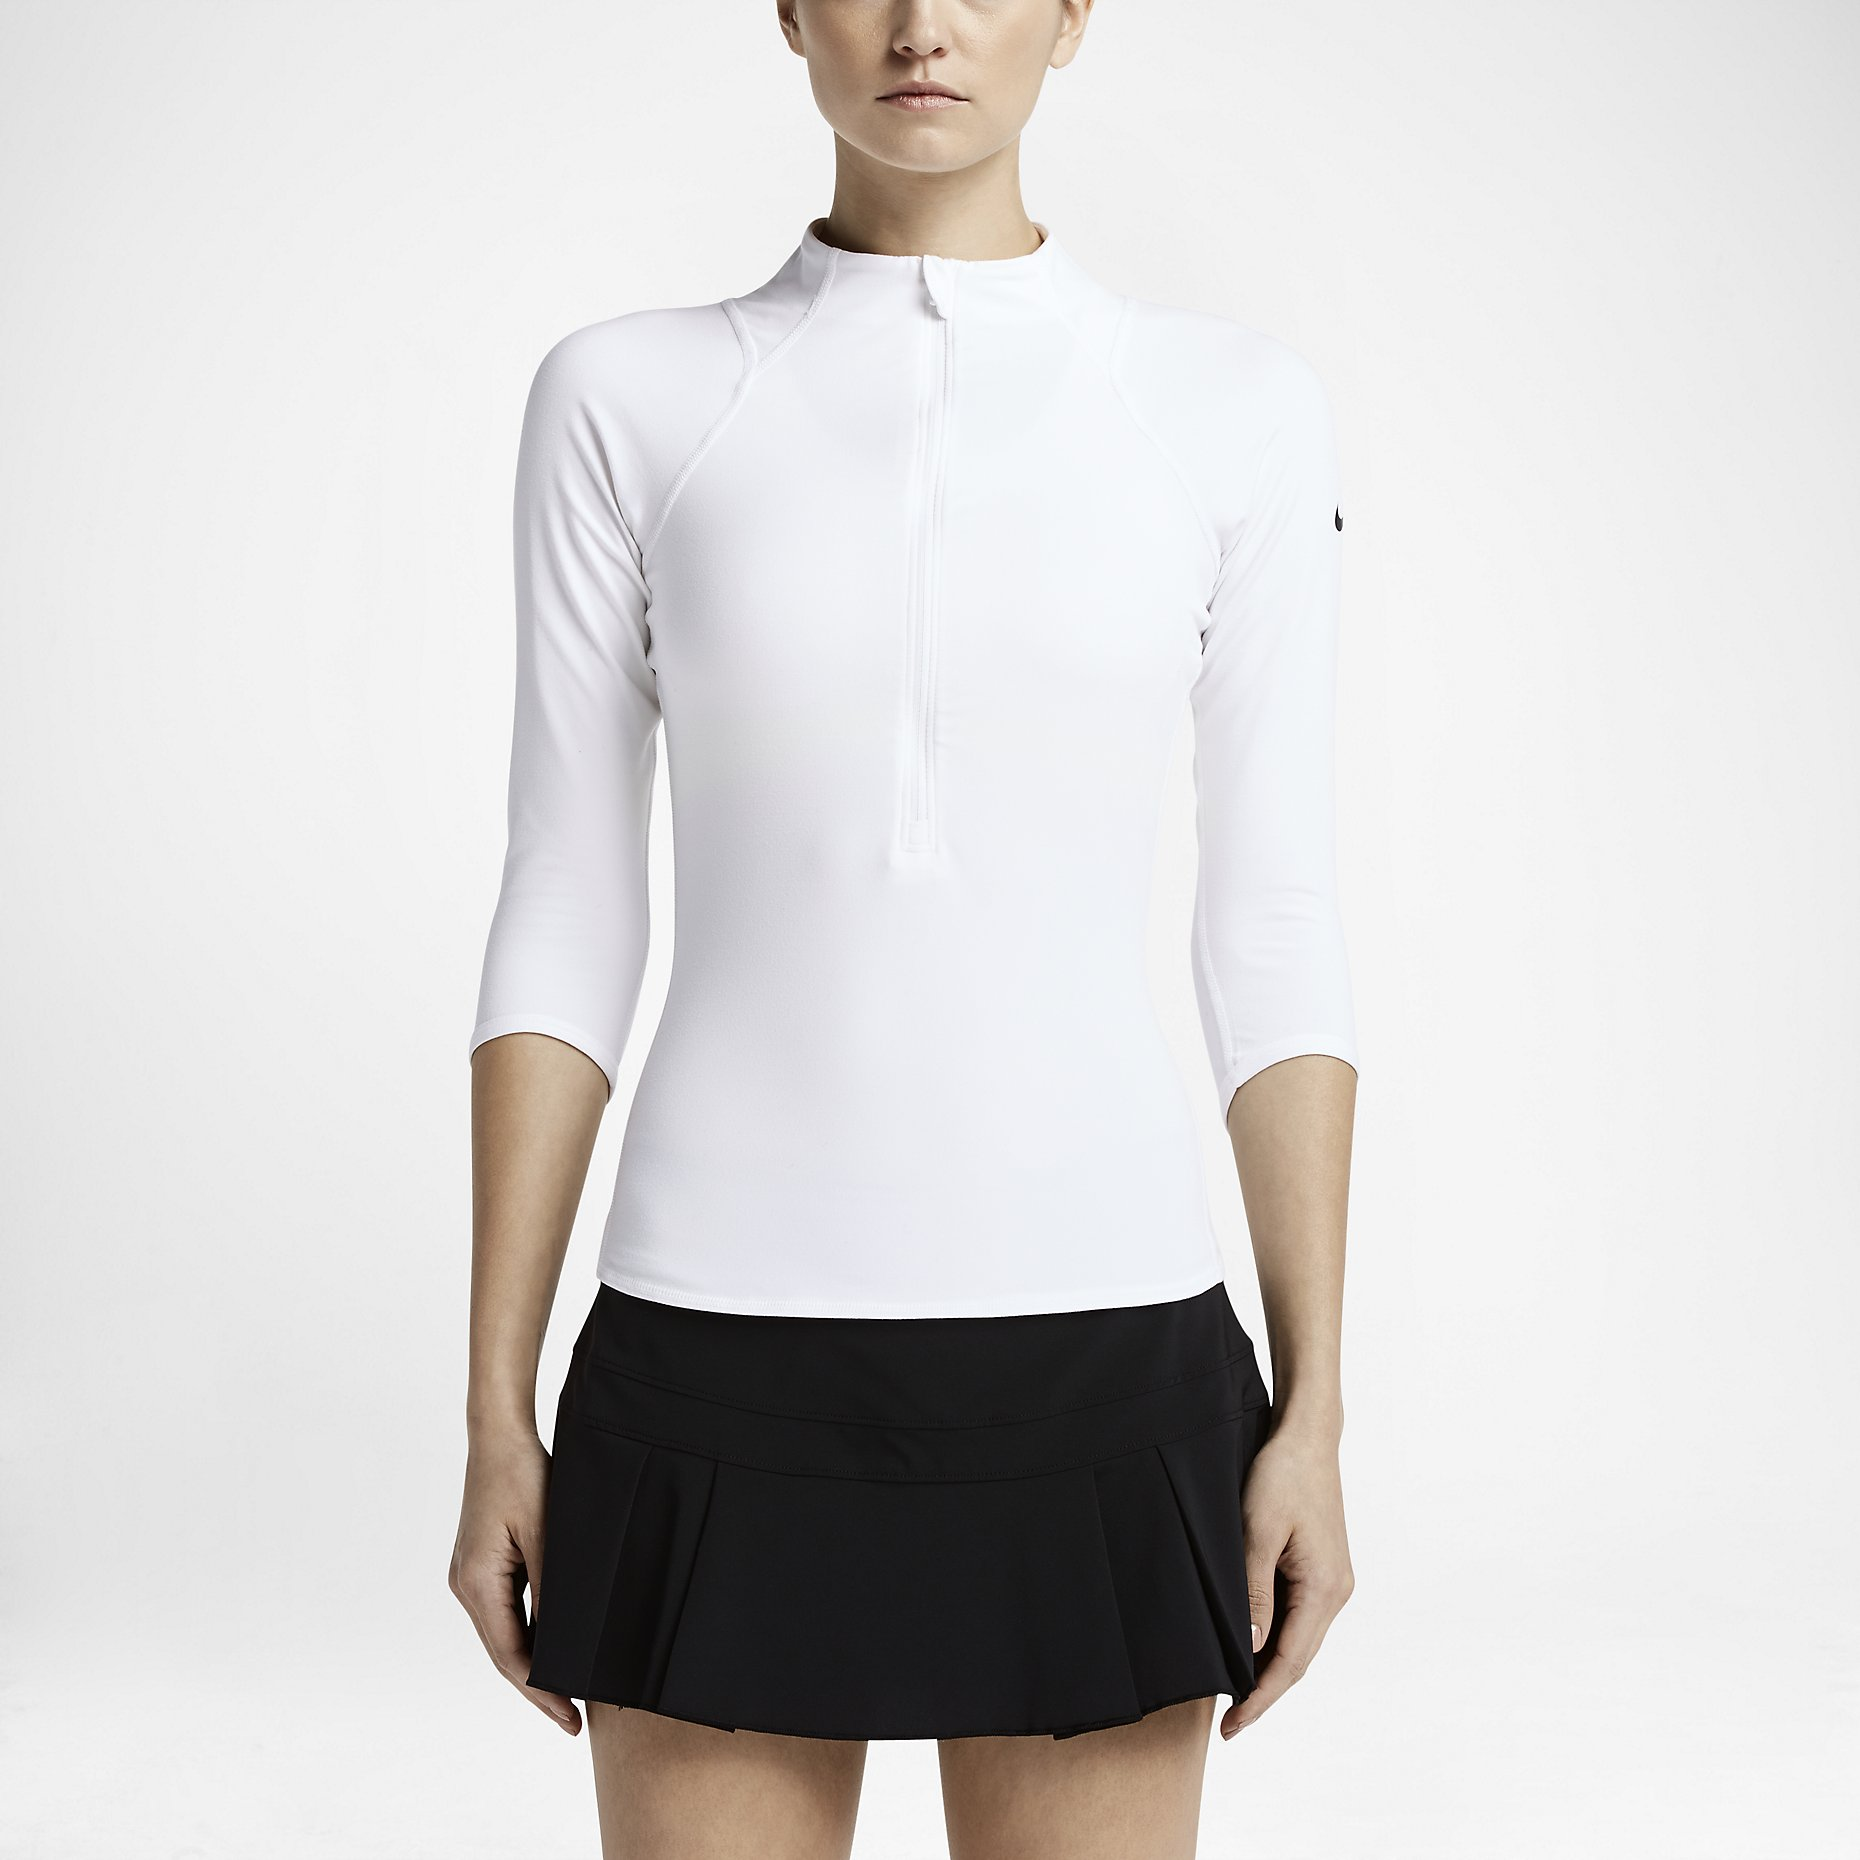 Nike top worn by Kate Middleton